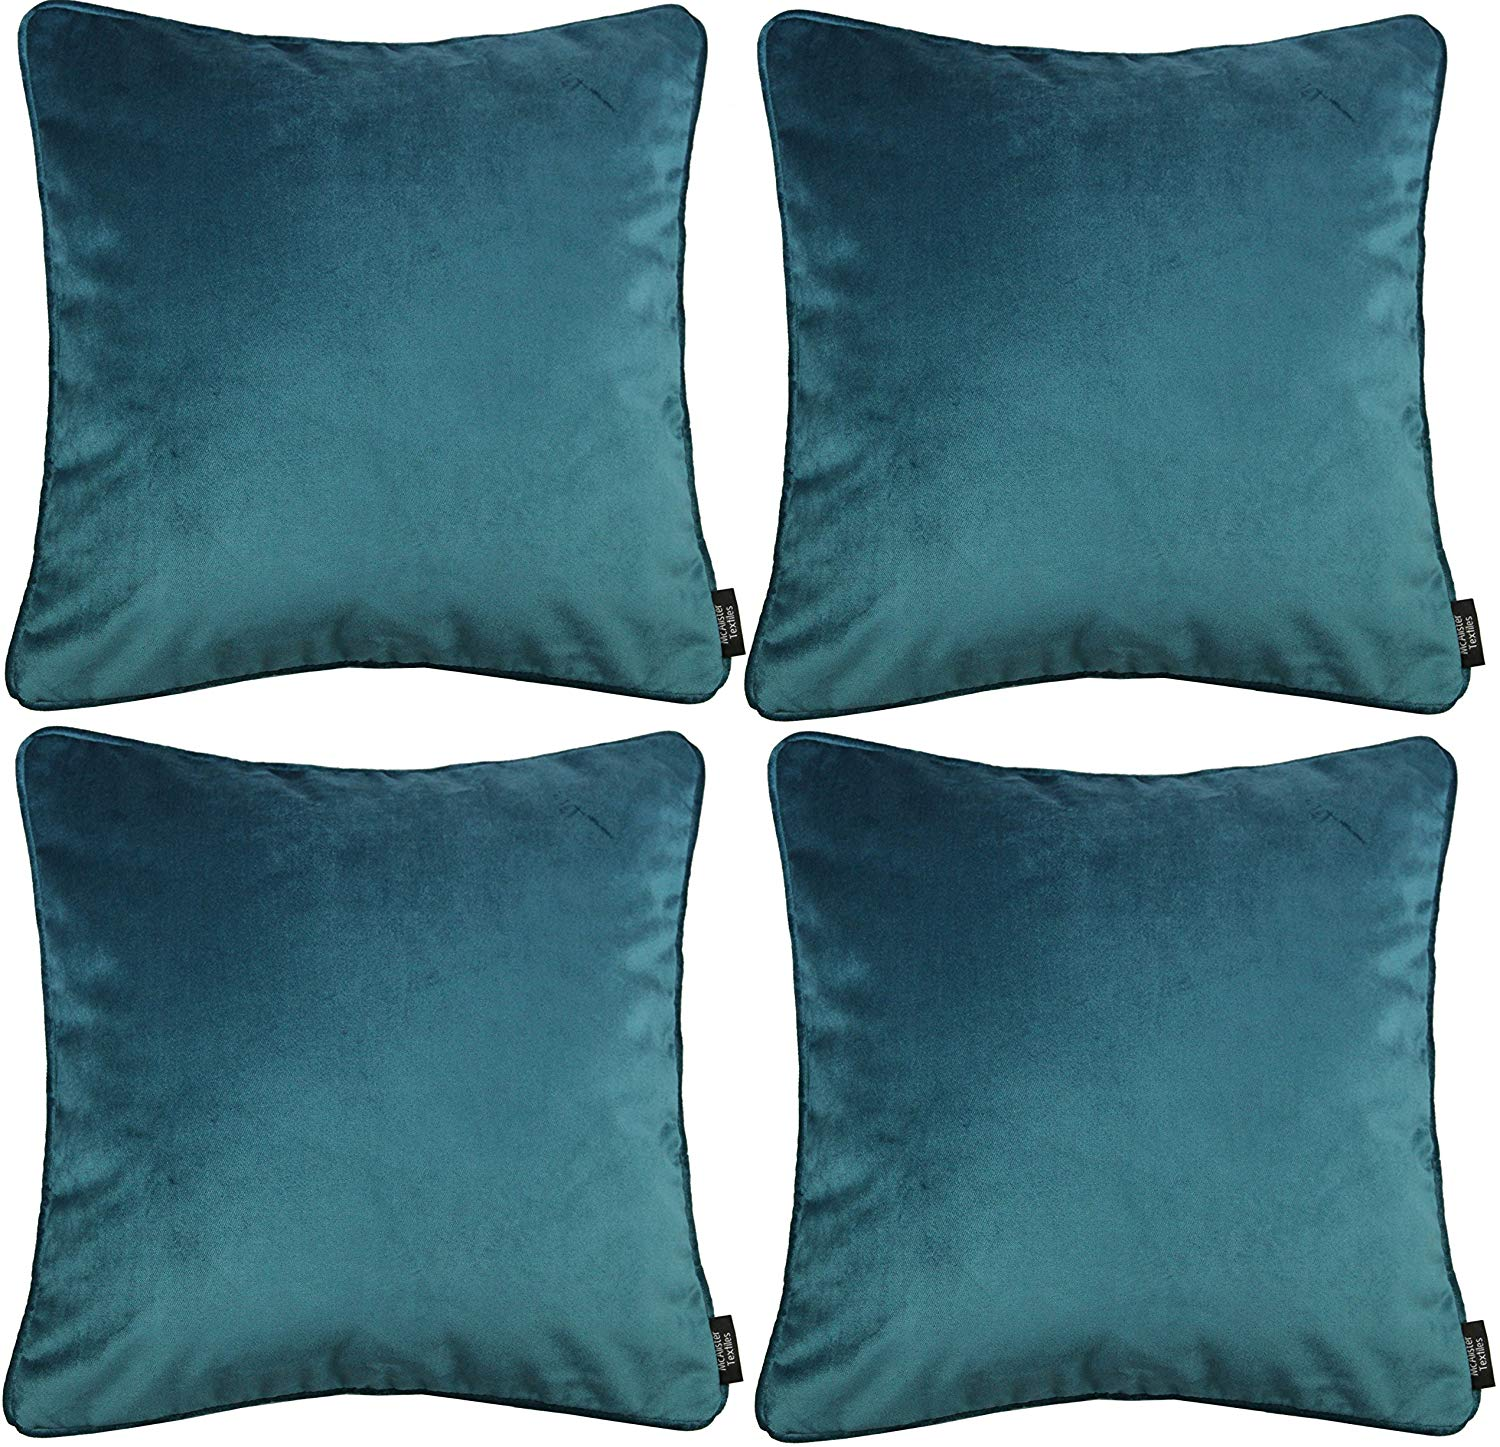 McAlister Textiles Matt Blue Teal Velvet 43cm x 43cm Cushion Sets Cushions and Covers Cushion Covers Set of 4